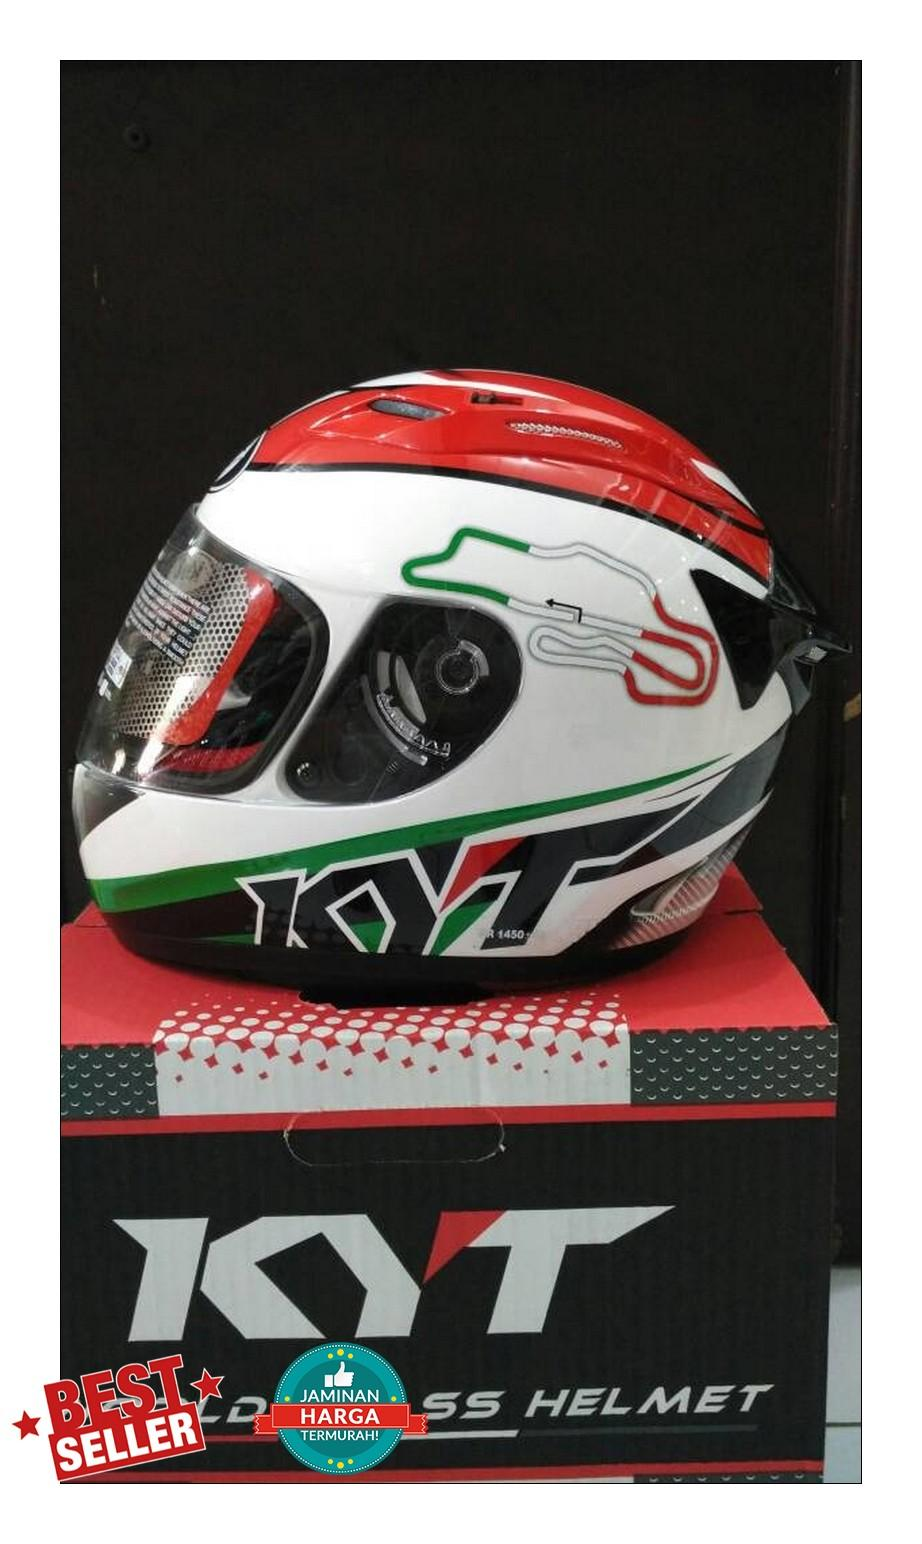 helm fullface Kyt Rc7 spain & italy series